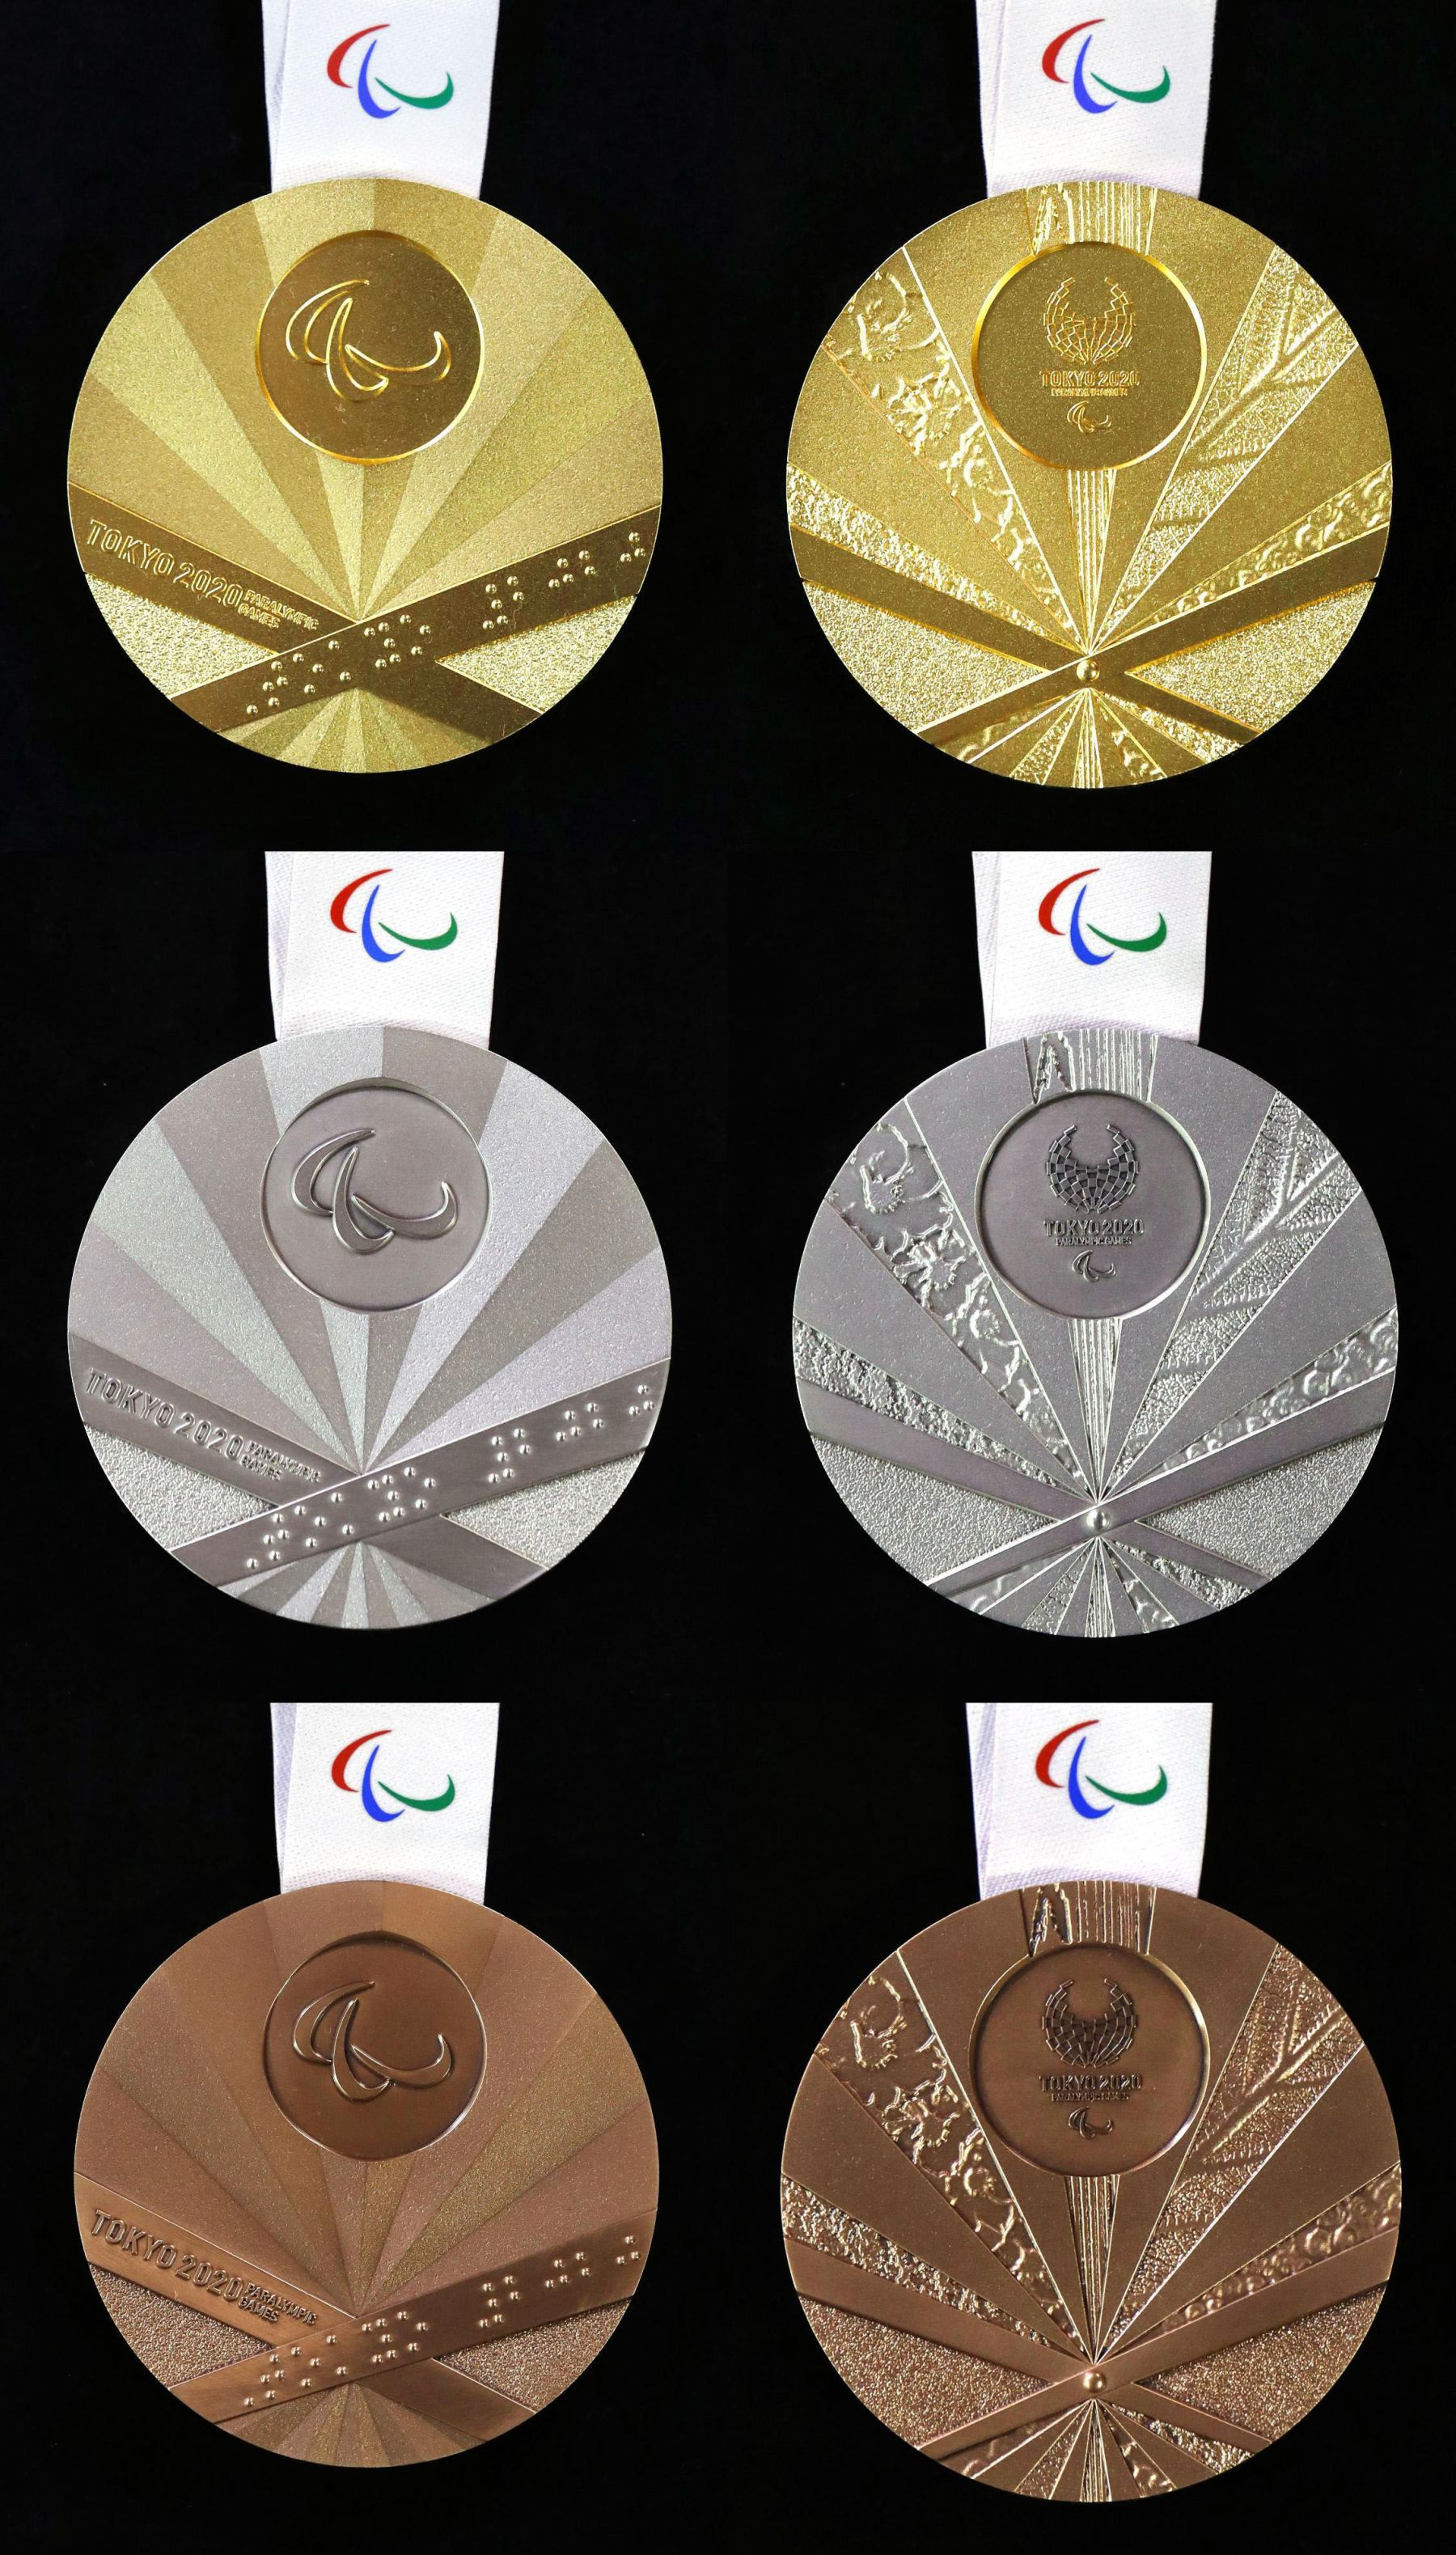 2020 Paralympic Games Medals Feature Japanese Folding Fan Designs 009